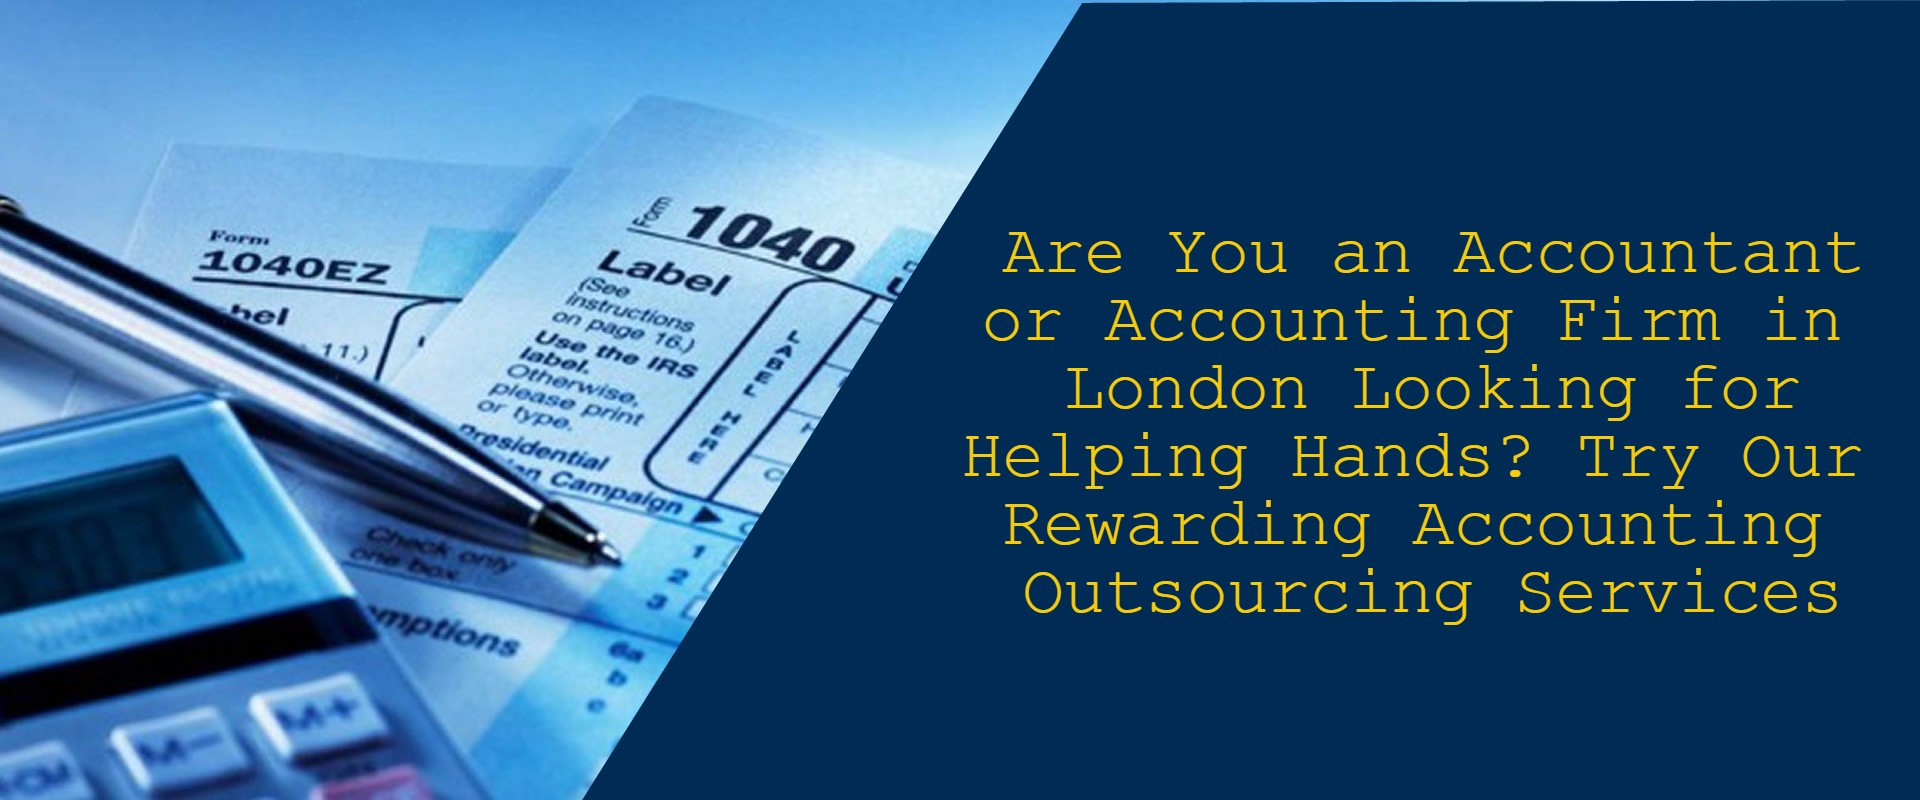 Are You an Accountant or Accounting Firm in London Looking for Helping Hands? Try Our Rewarding Accounting Outsourcing Services